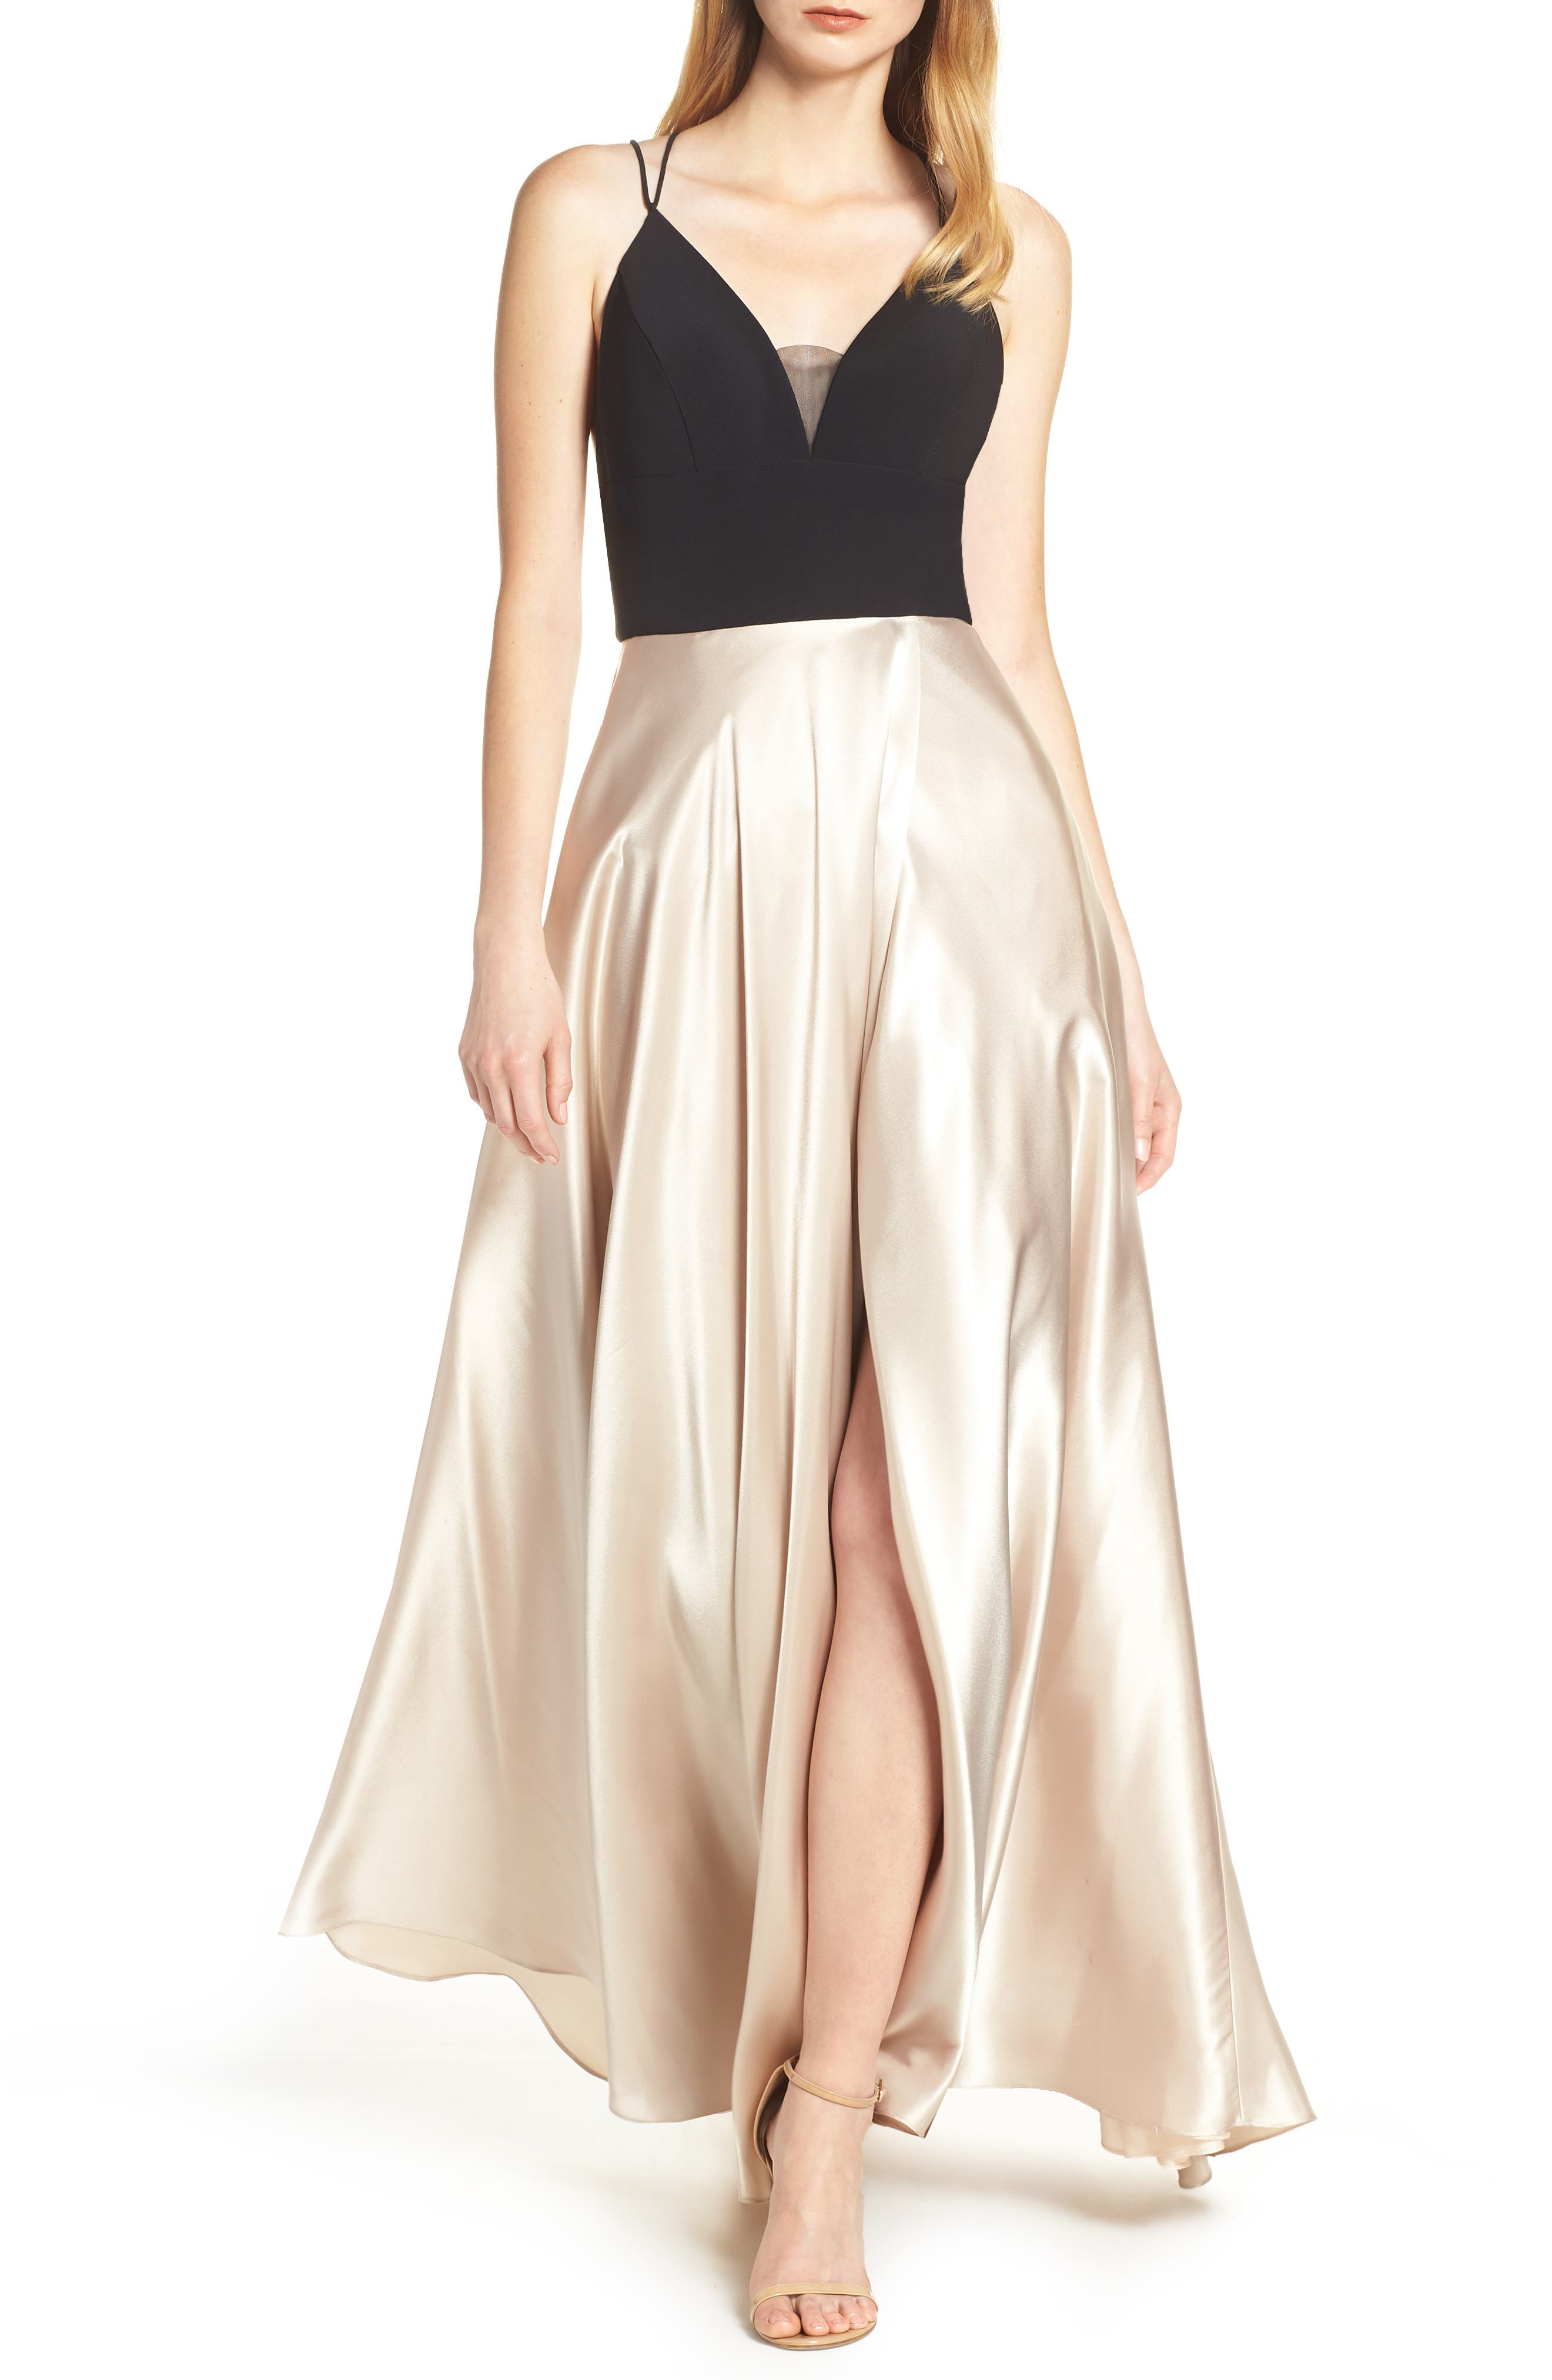 Blondie Nites Strappy Back Crepe & Charmeuse Evening Dress, Yellow